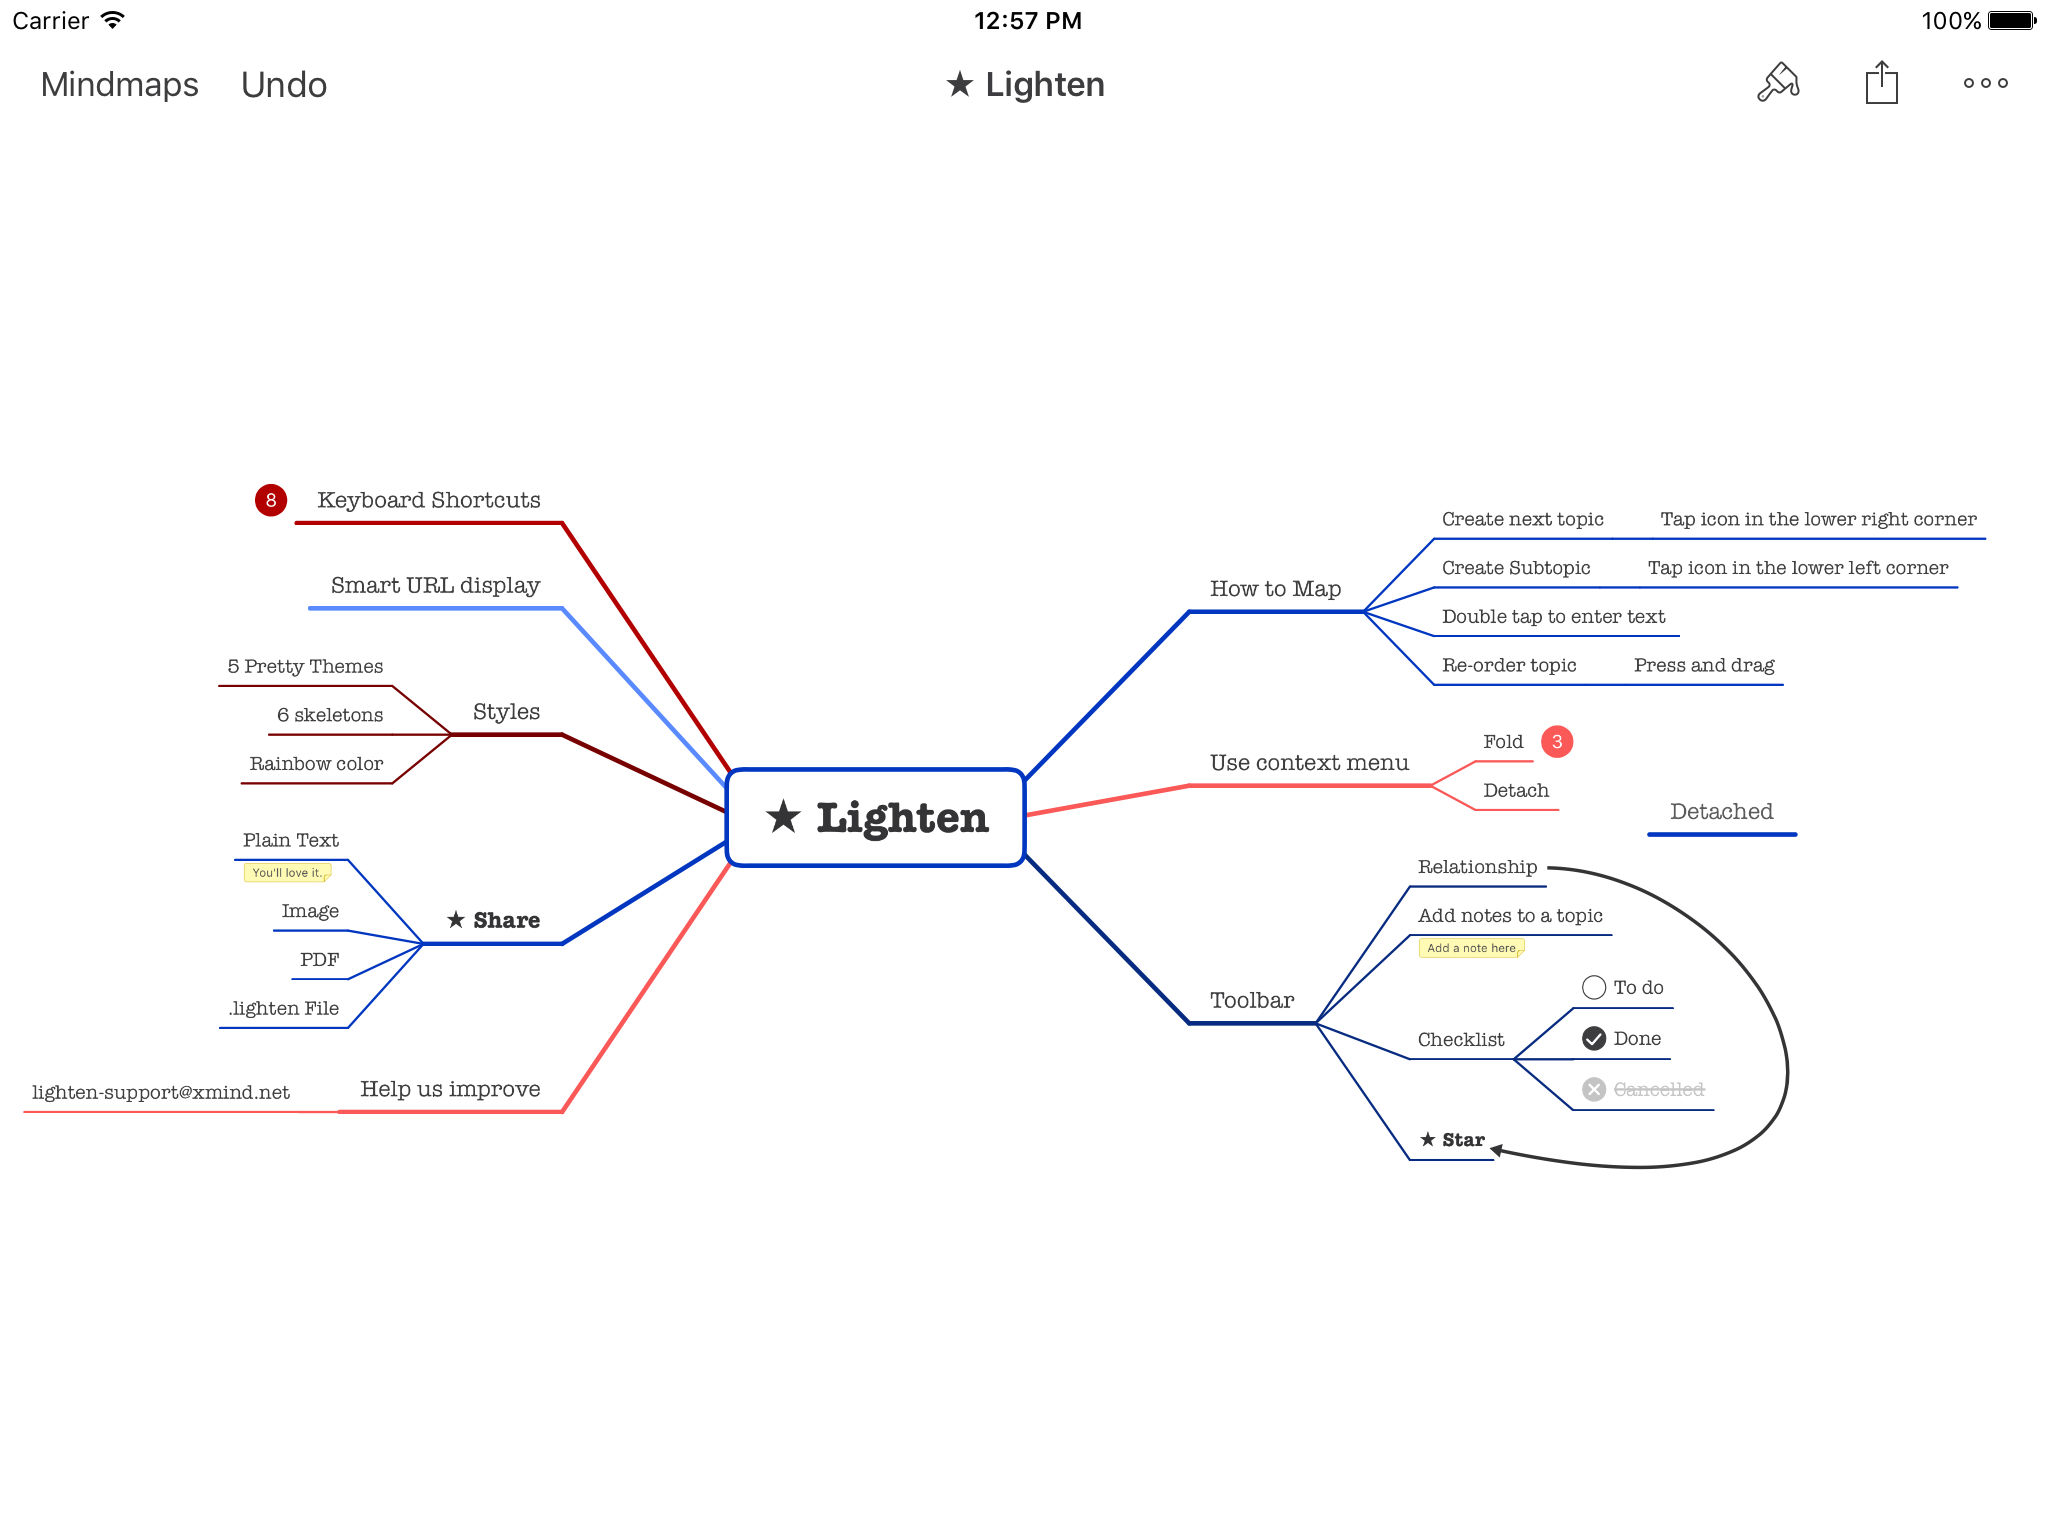 mind mapping apps for ios mind map tr n ipad 8590bf3f4a78a5b47de205f7a1d0bc48 mind mapping apps for ioshtml mind mapping osx ios contoh - Osx Mind Mapping